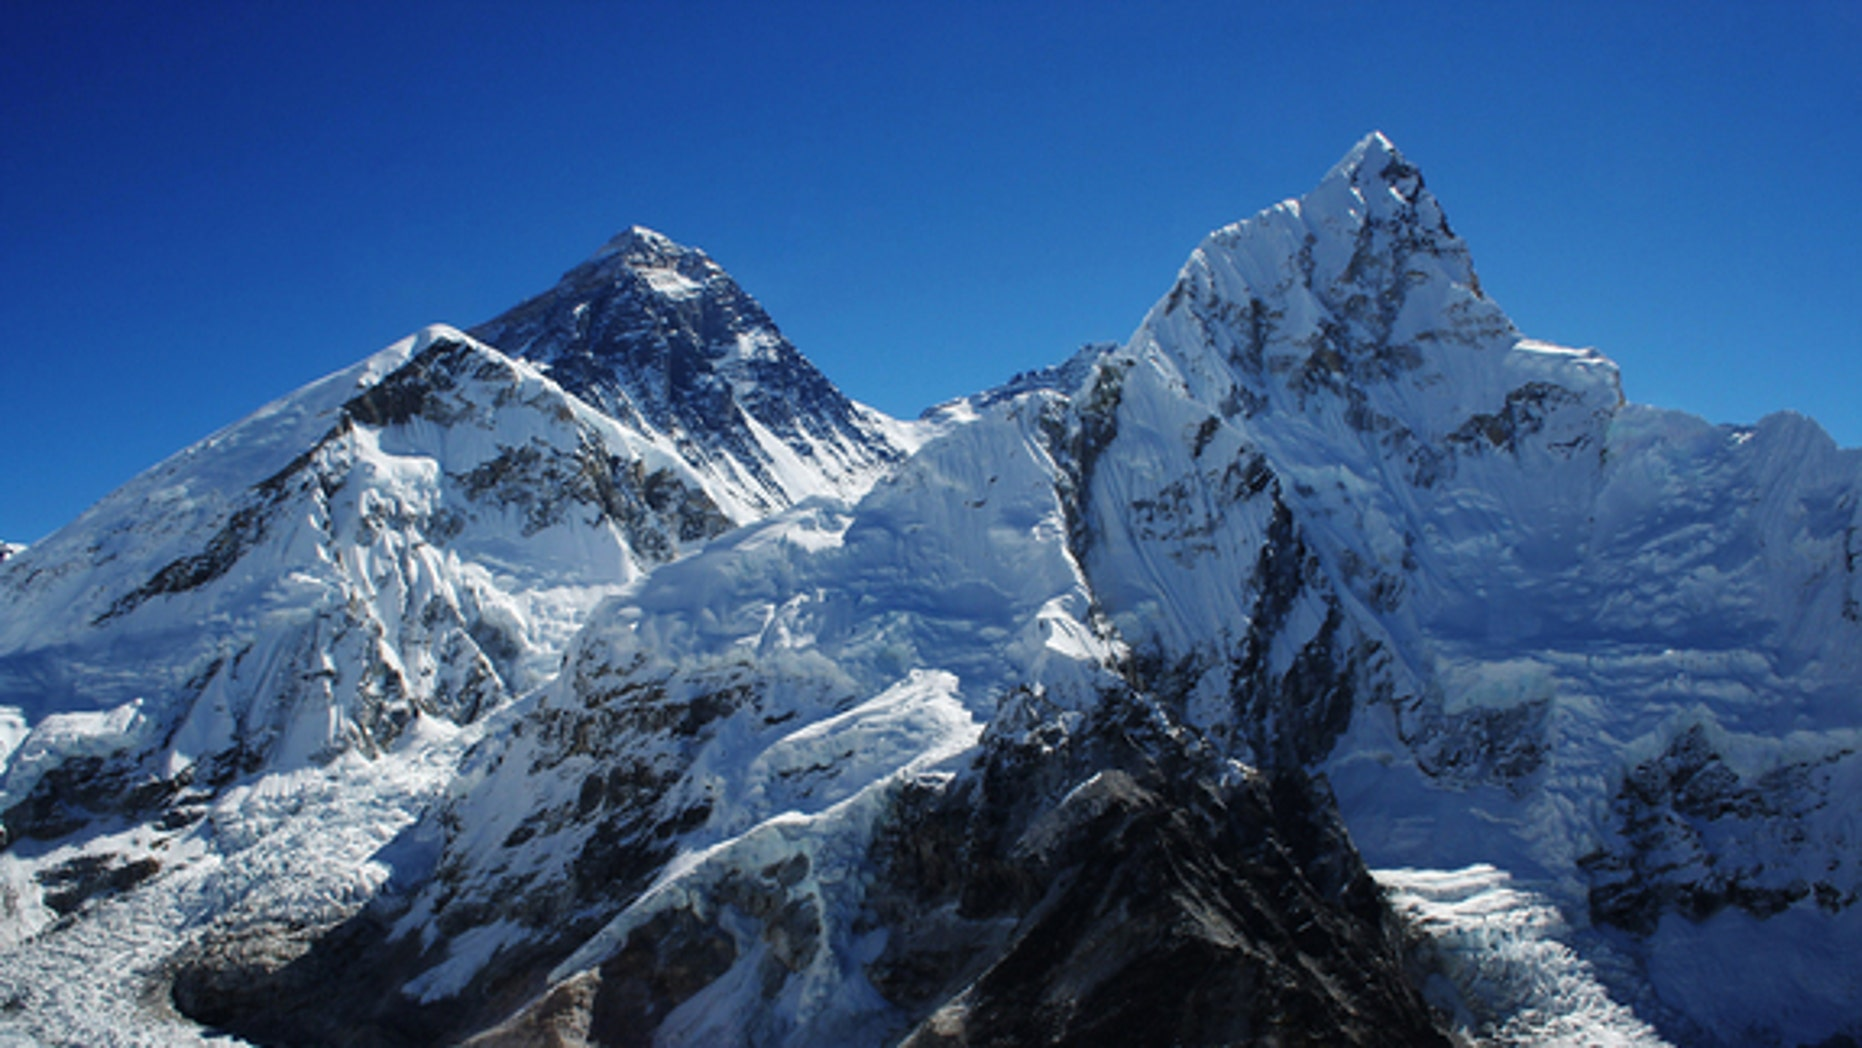 Mount Everest is the second peak from the left.